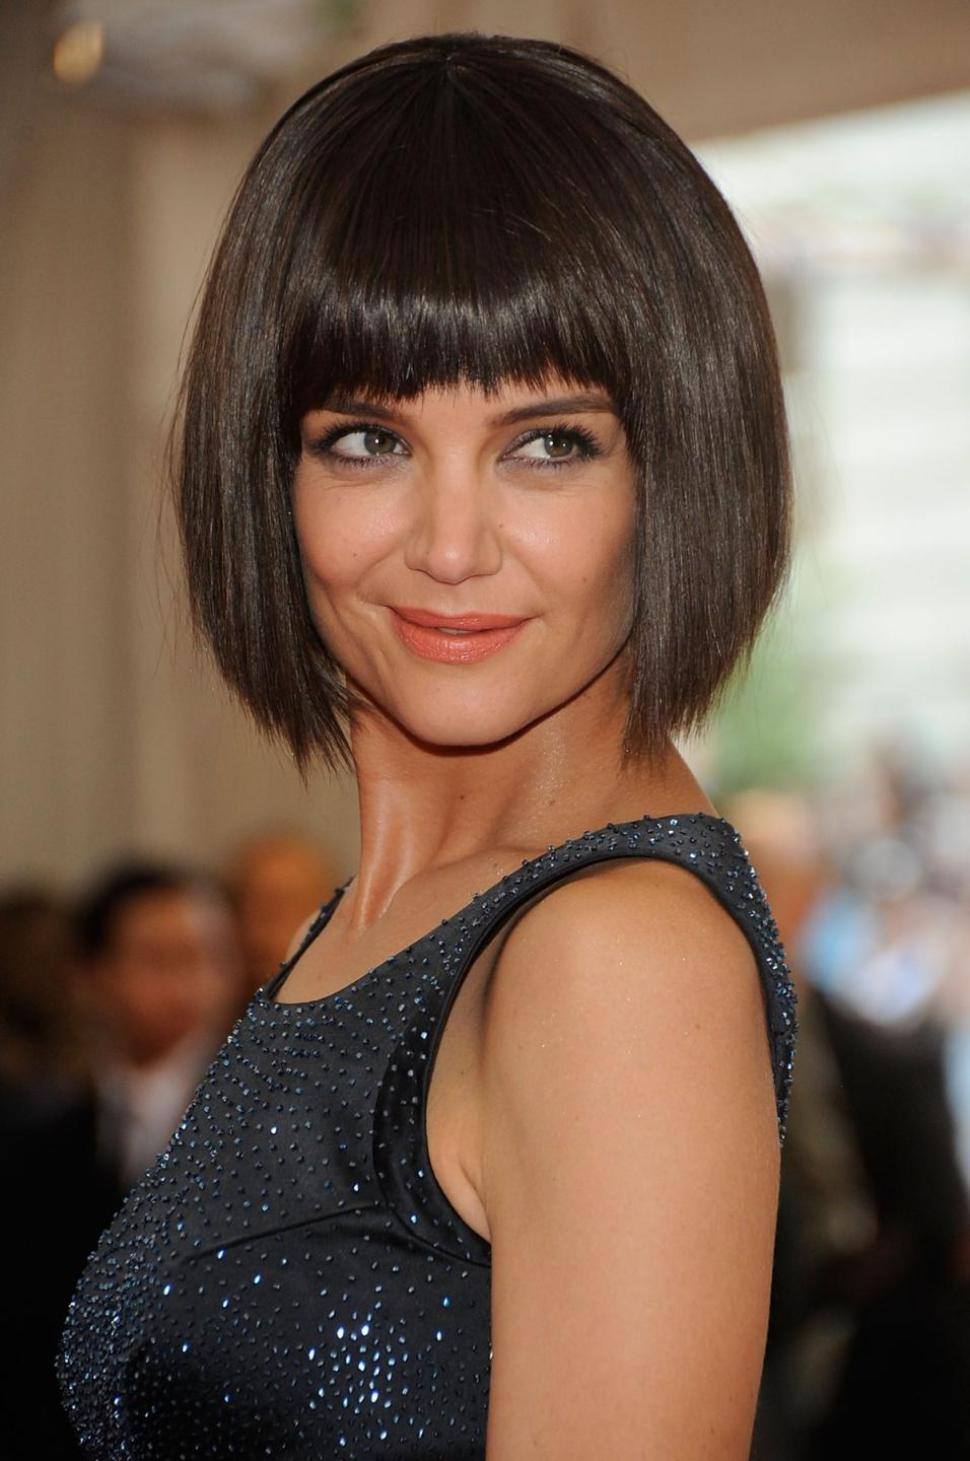 katie holmes bob makes another appearance at gala - dBTechno Katie Holmes